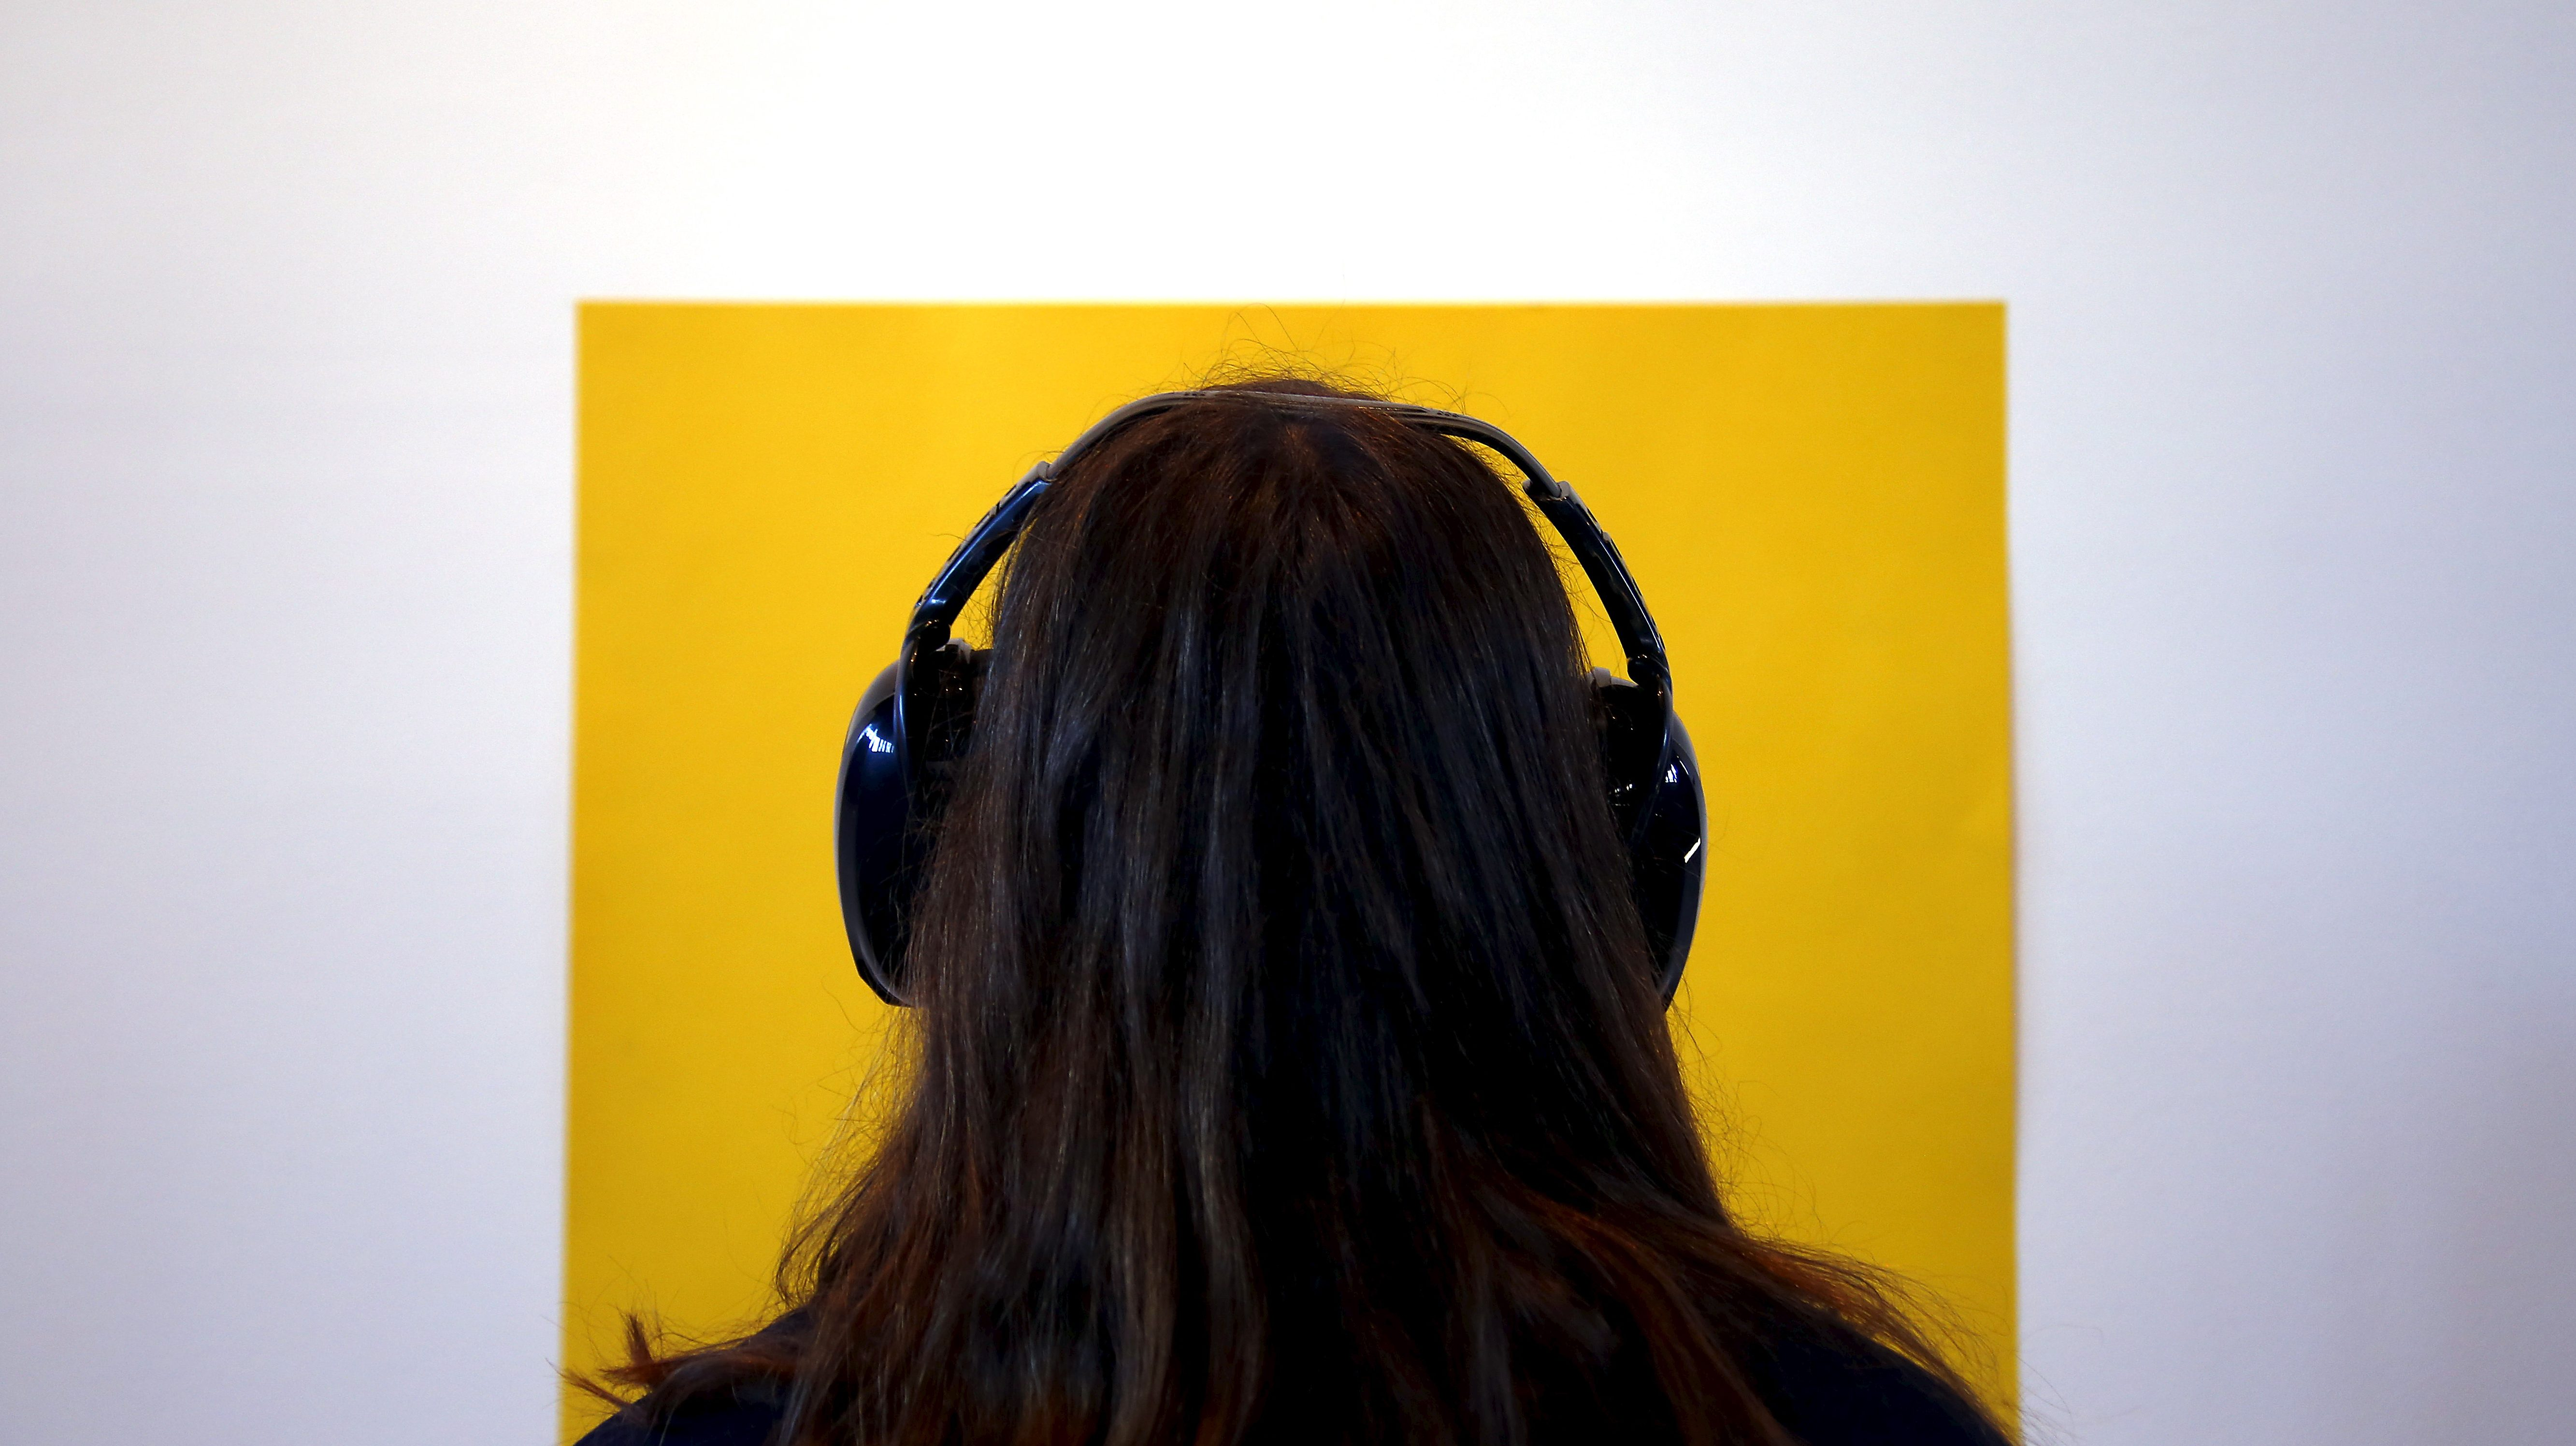 Photo of a female wearing headphones looking at a yellow square